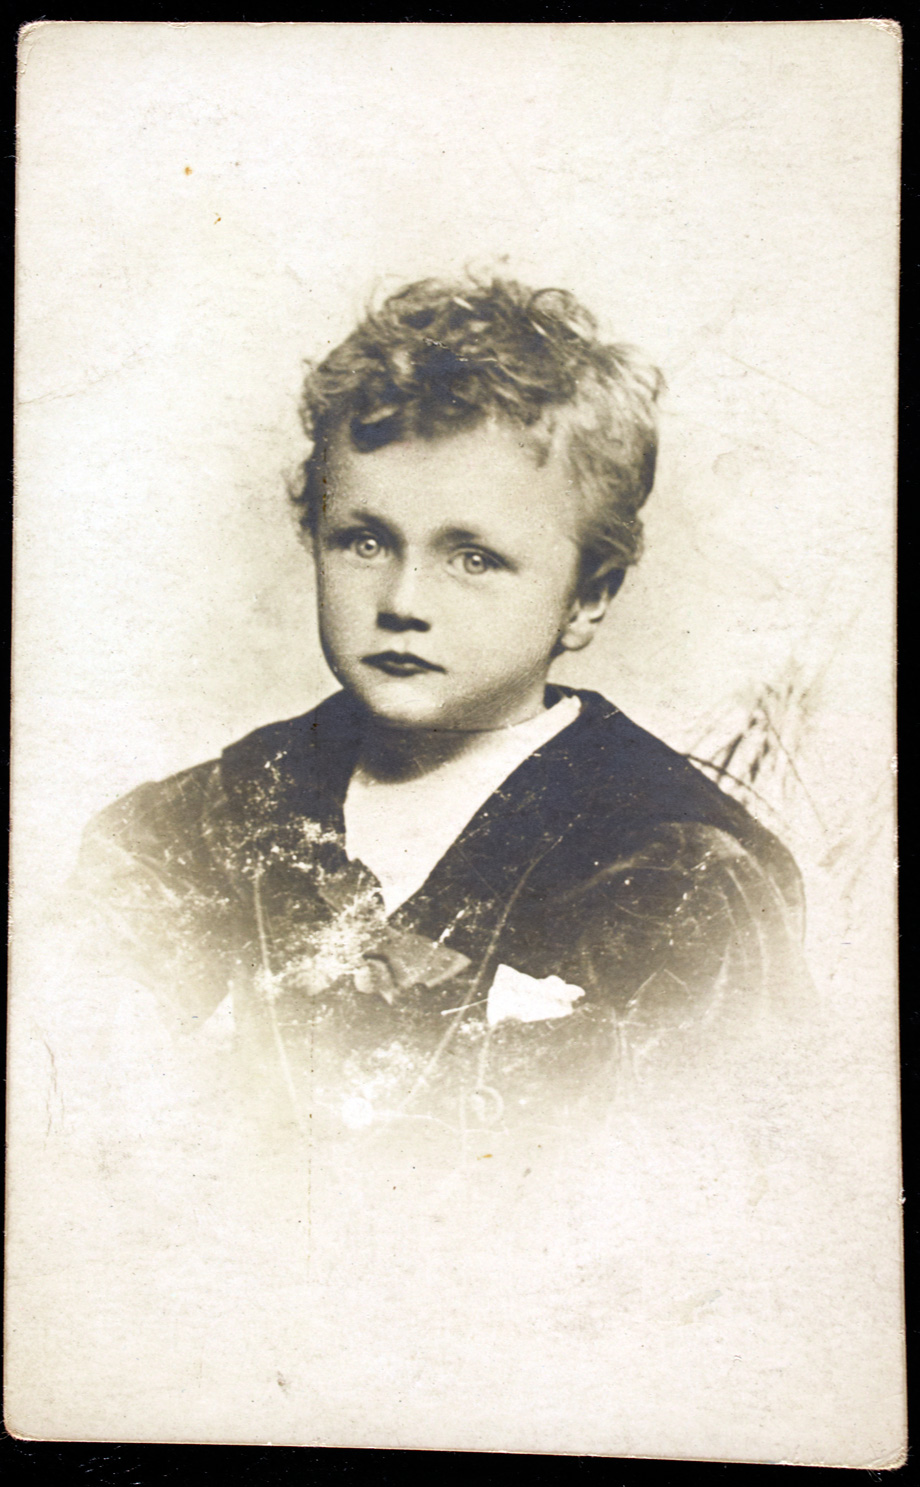 Jack Jenkinson as a little boy, dressed in a sailor's outfit